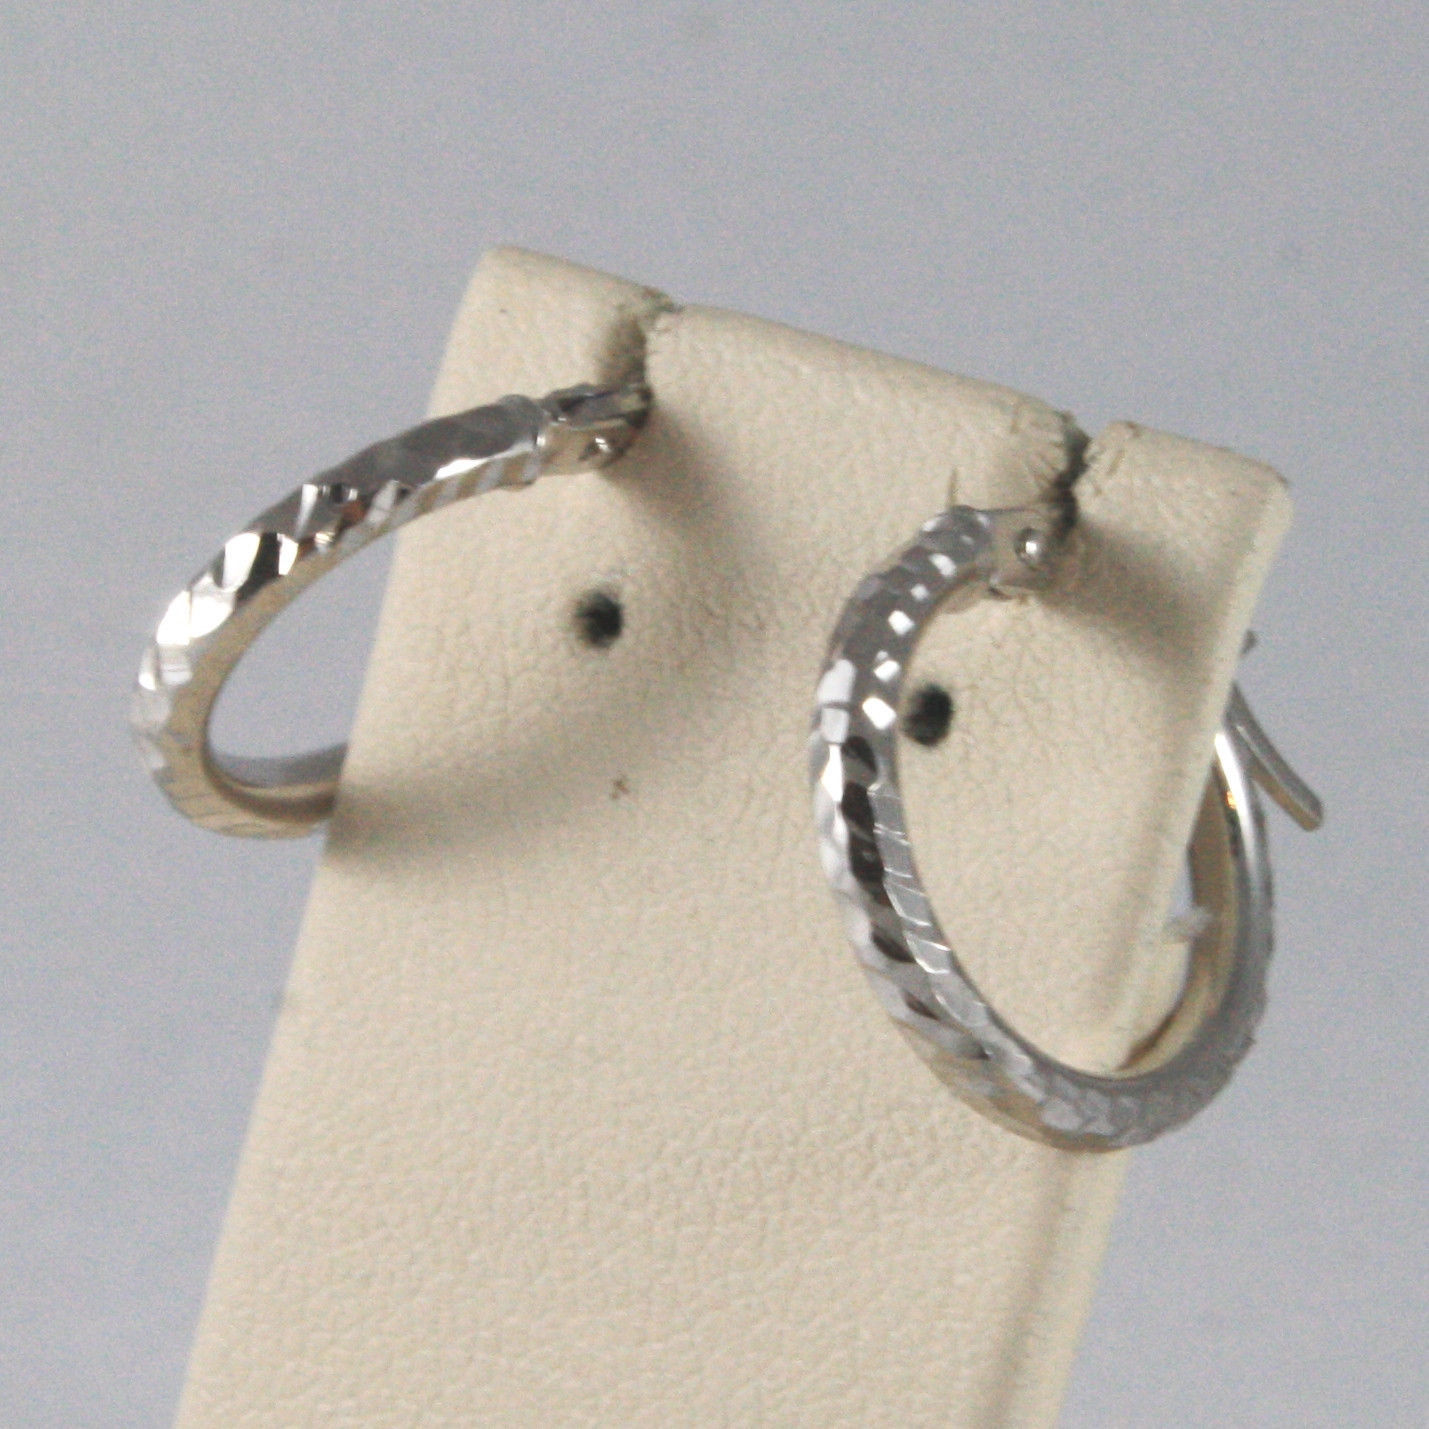 SOLID 18KT. WHITE GOLD CIRCLE, HAMMERED EARRINGS DIAMETER 0,55 IN MADE IN ITALY